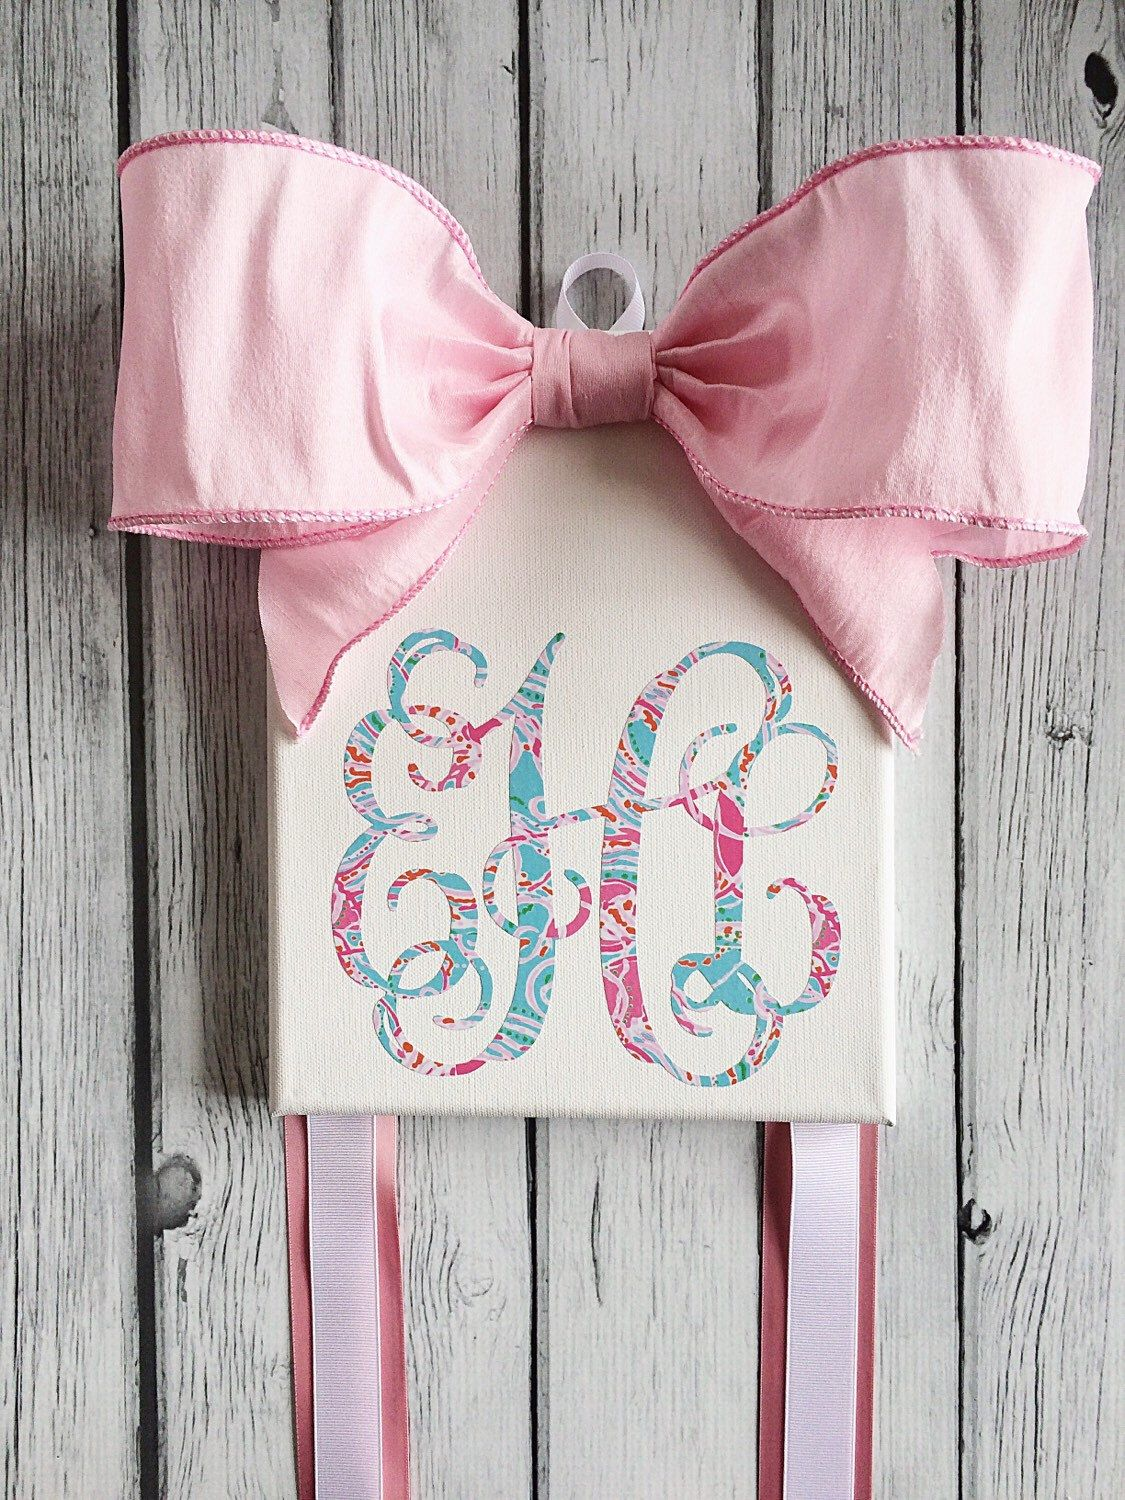 Monogrammed Hair Bow Holder With Lilly Pulitzer Inspired